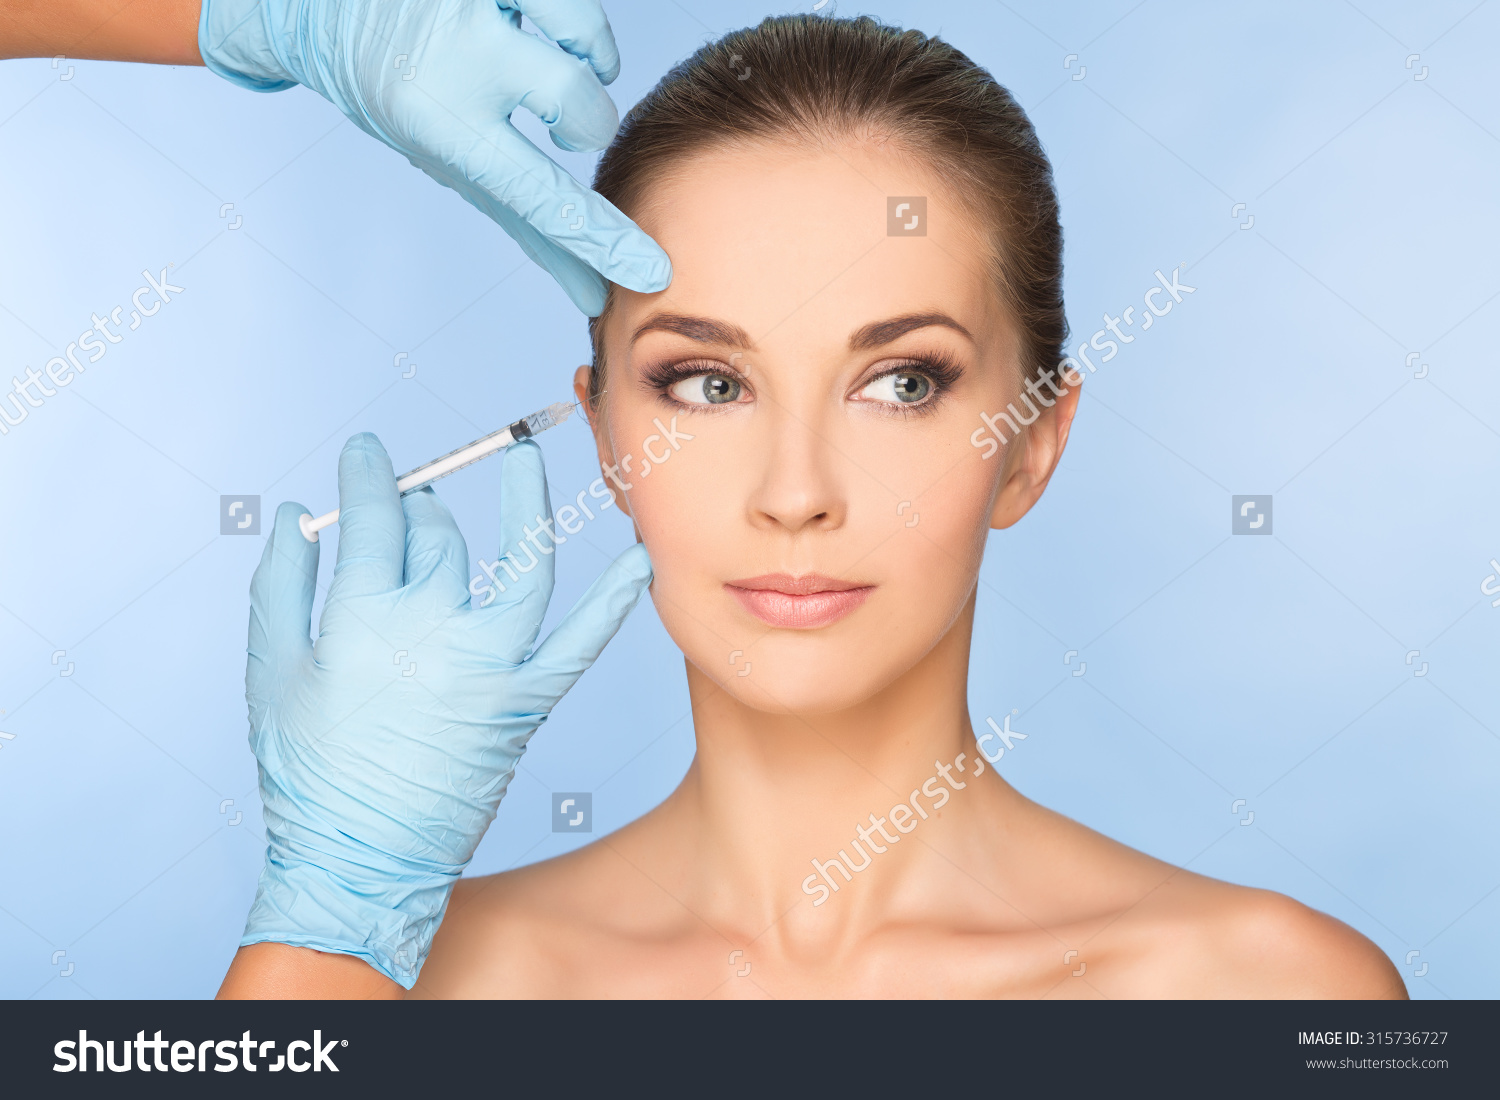 stock-photo-portrait-of-young-caucasian-woman-getting-cosmetic-injection-315736727.jpg